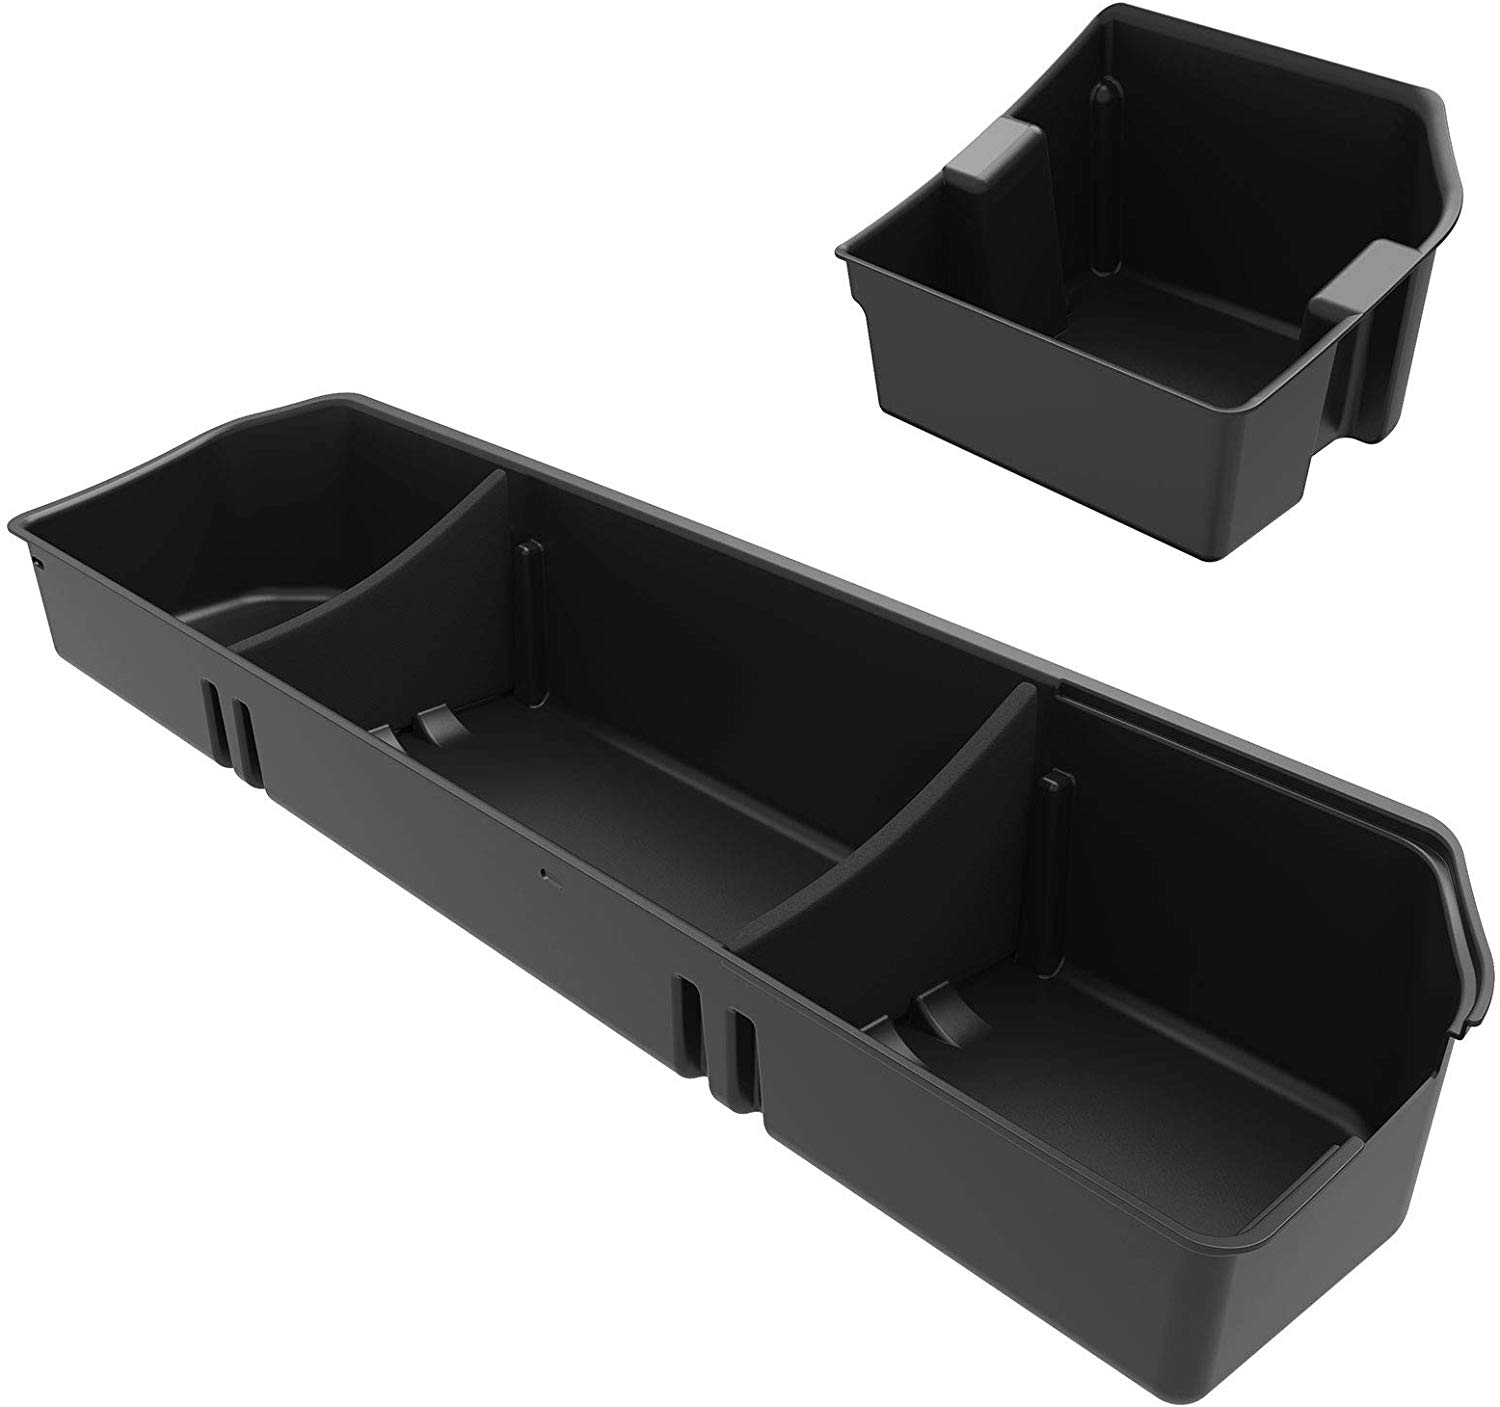 Top 10 Best Underseat Storages for Ford F150 in 2020 Reviews